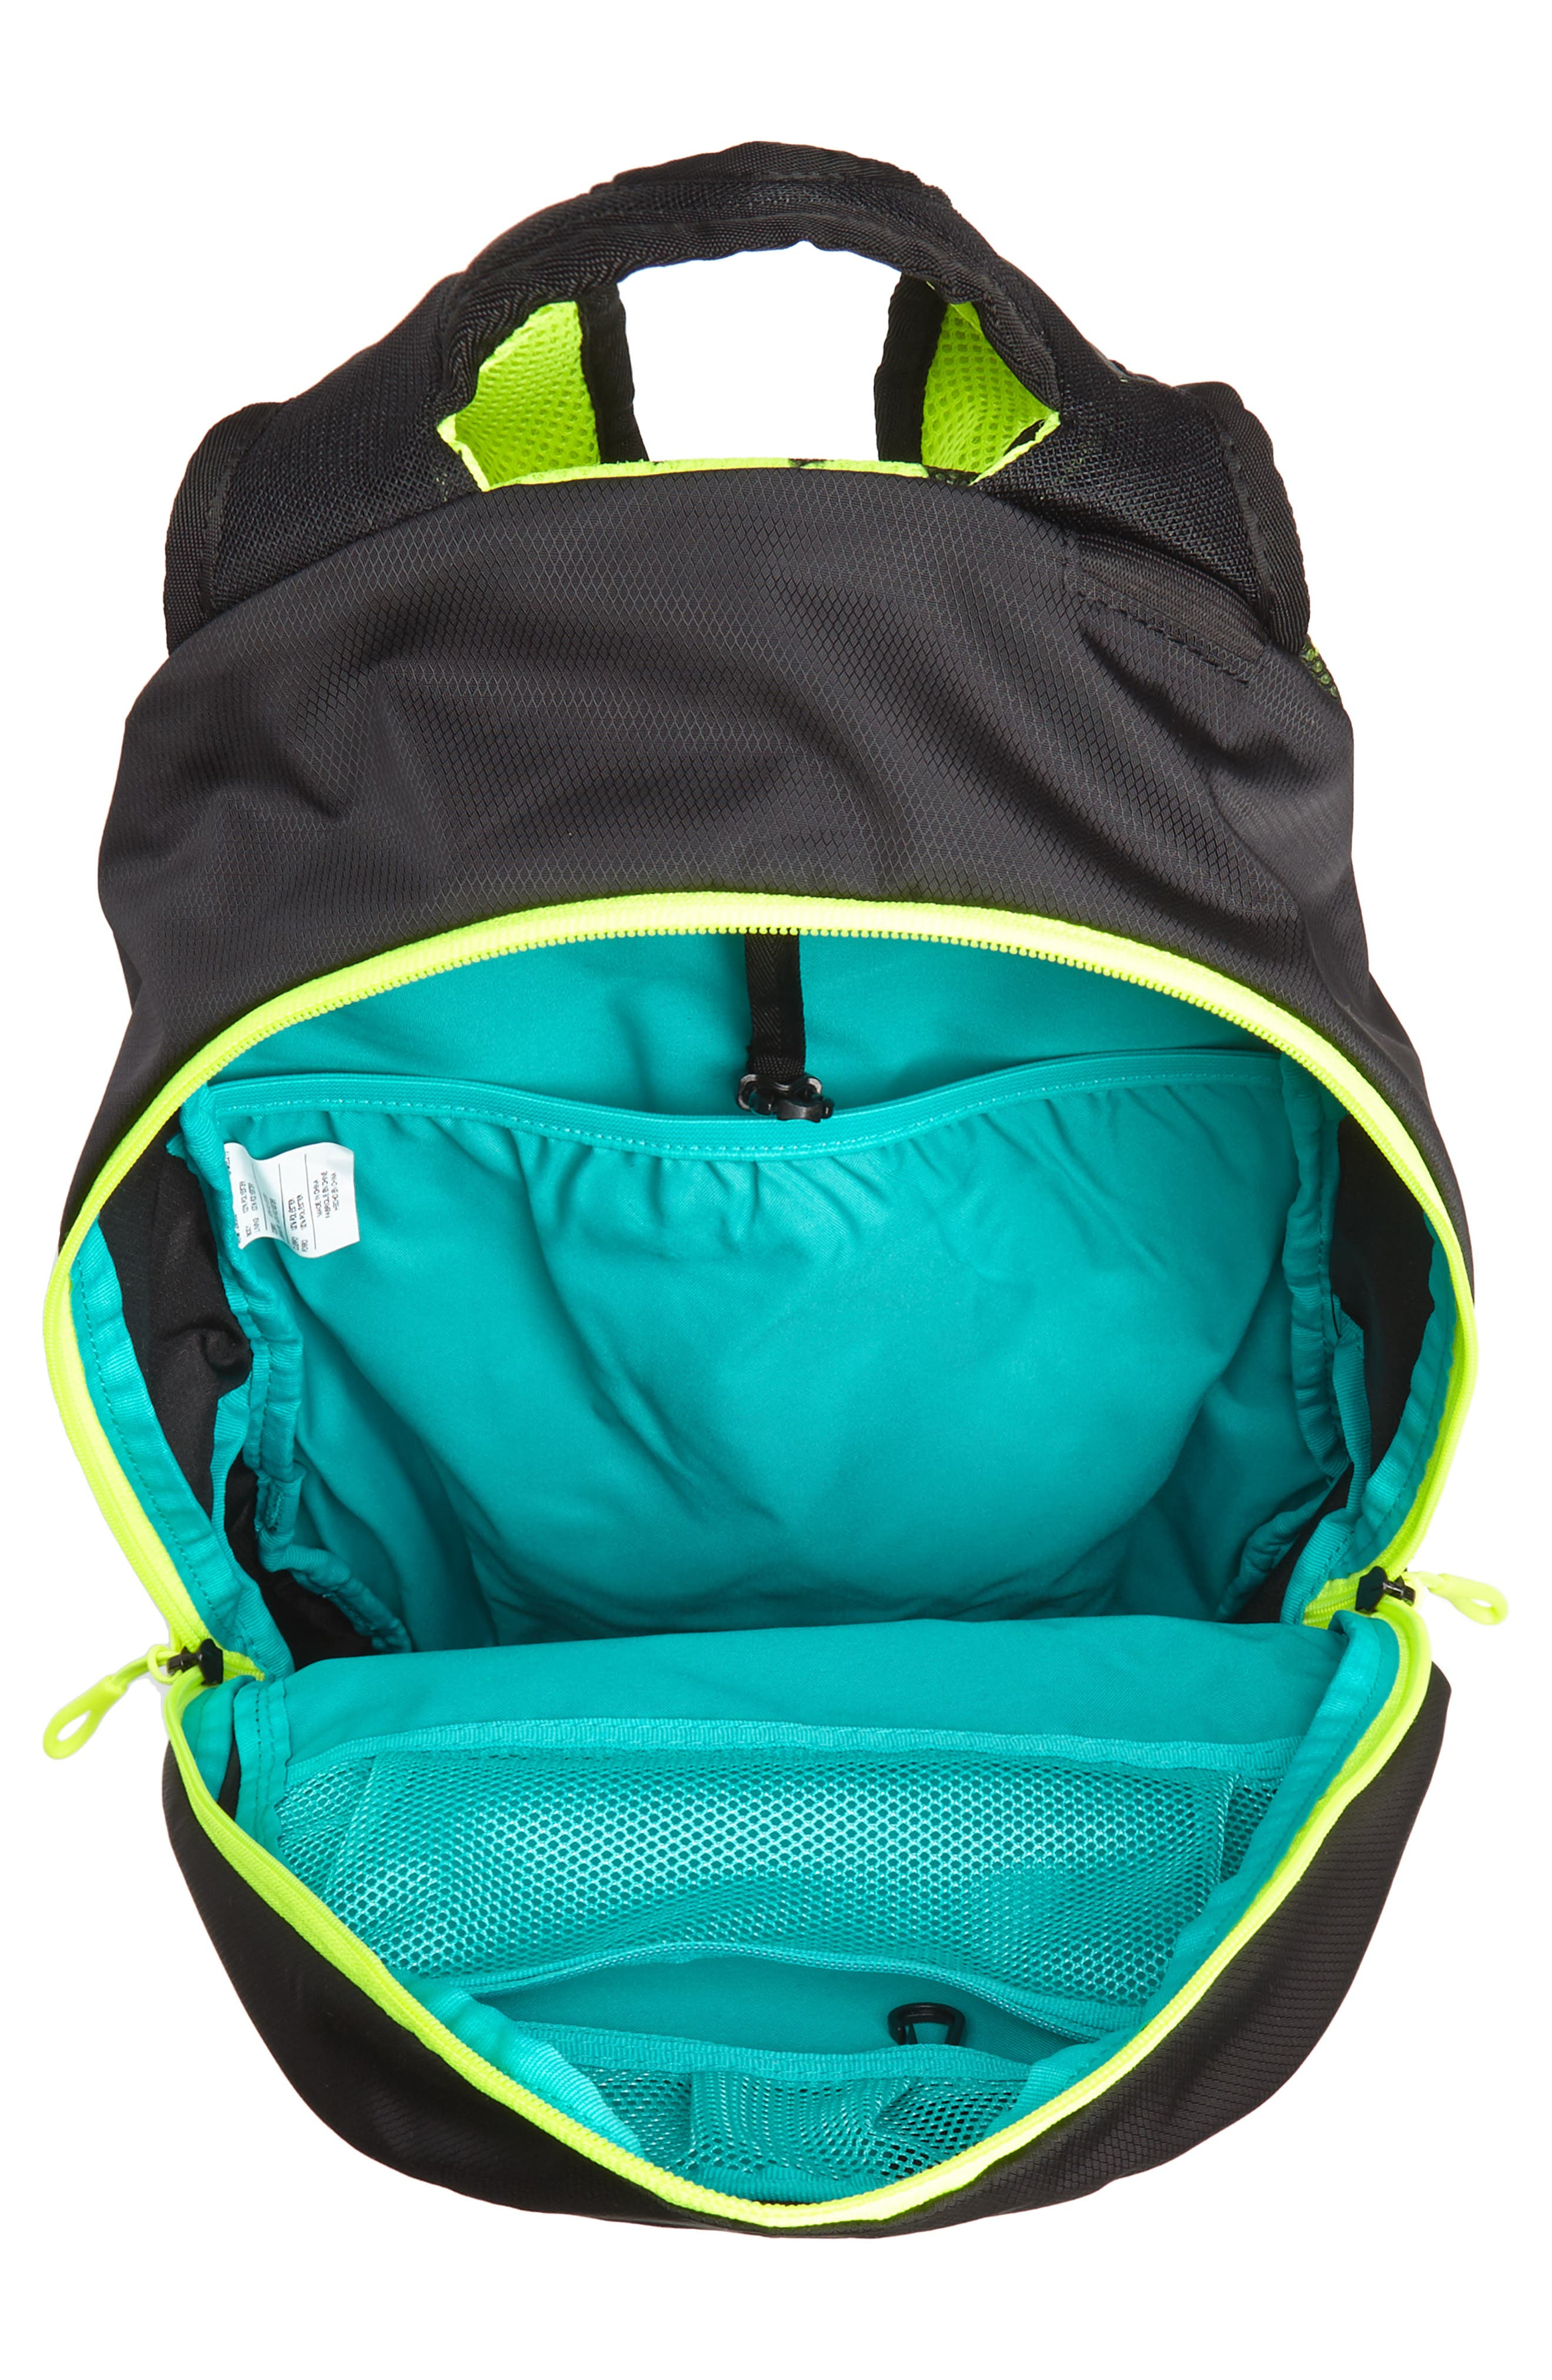 Run Commuter Backpack,                             Alternate thumbnail 4, color,                             Black/ Volt/ Silver